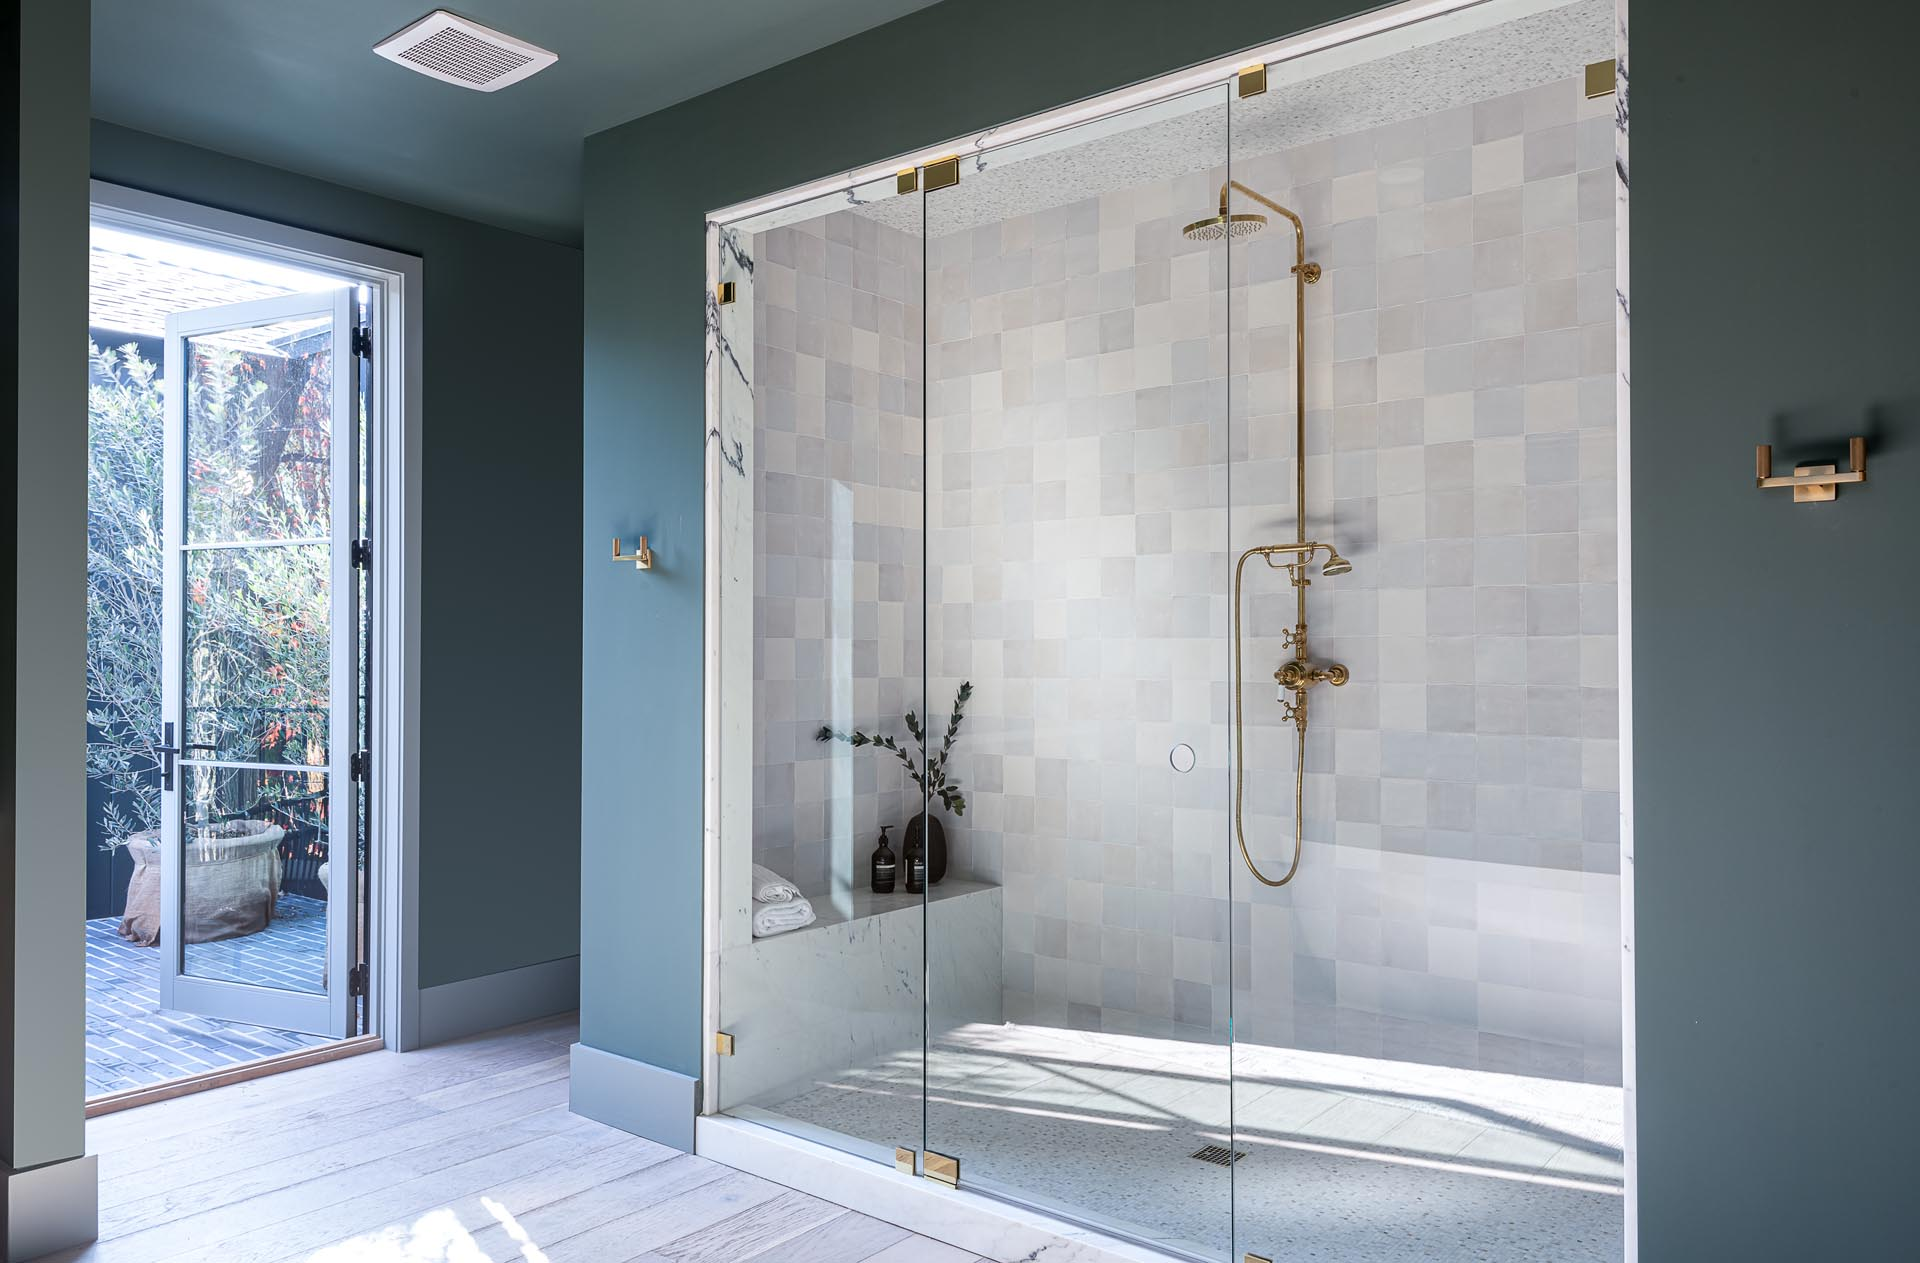 The glass enclosed walk-in shower is lined with square tiles, while a bench has been built-in at one end.